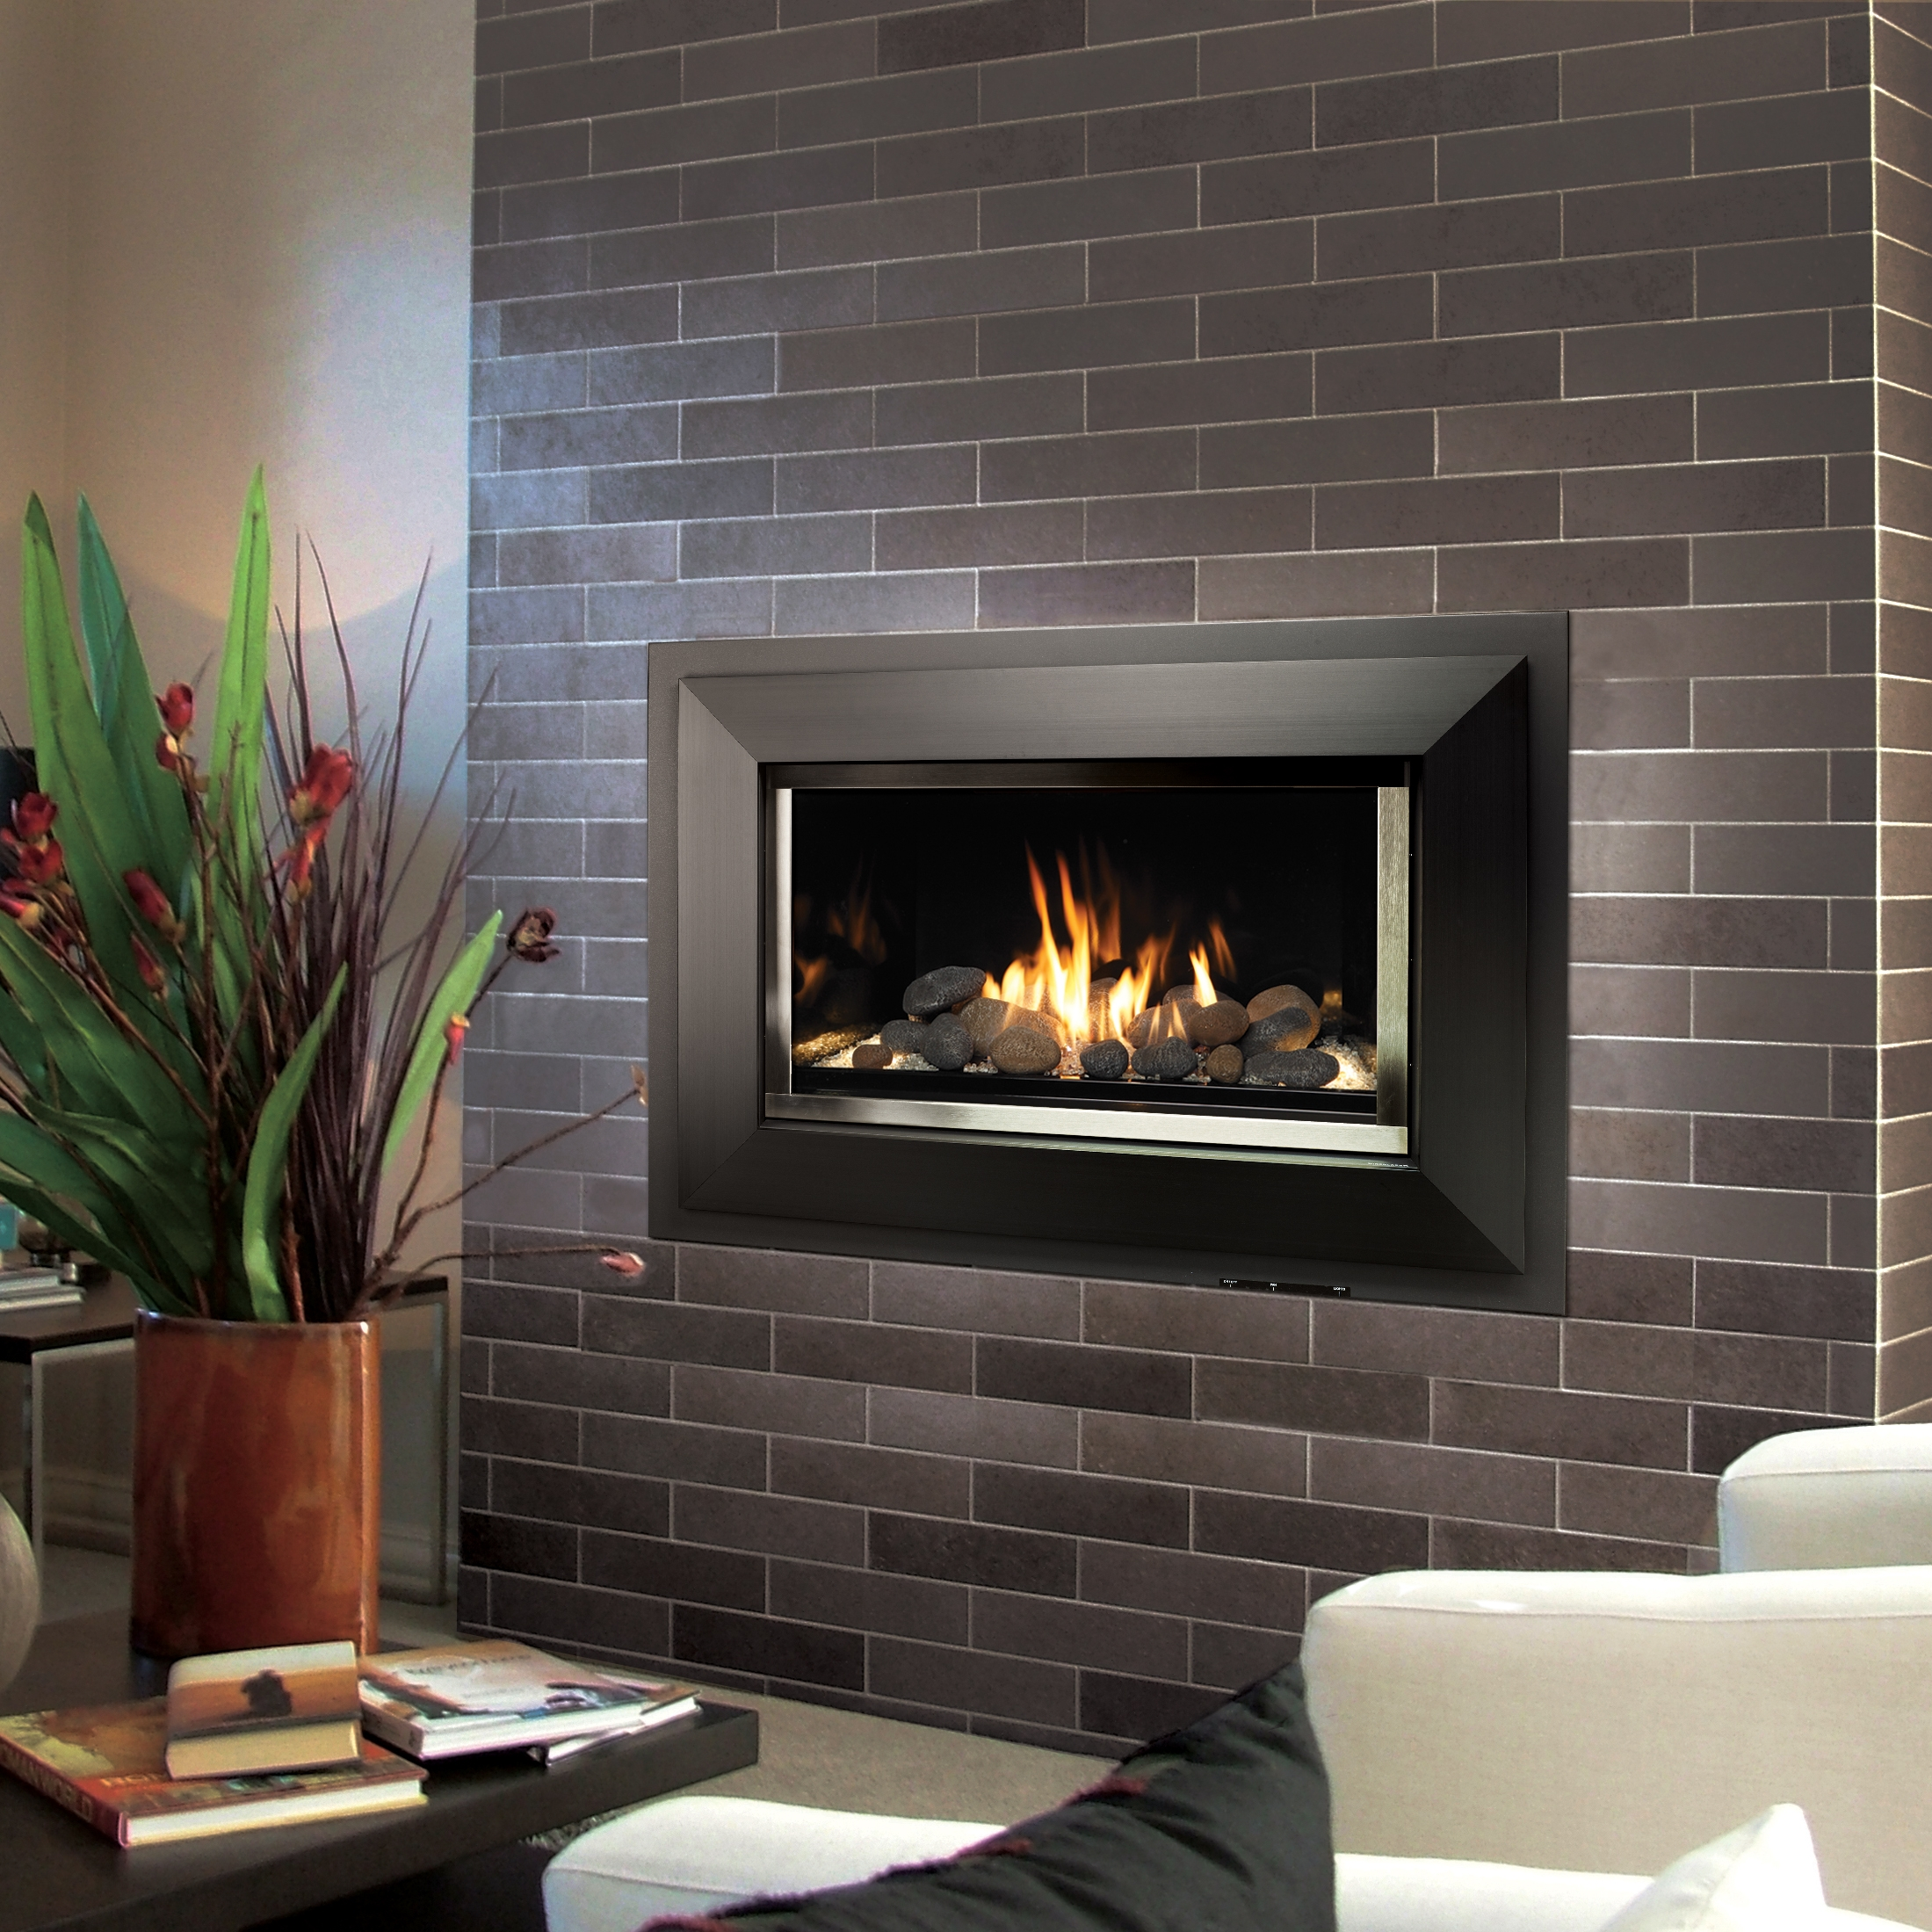 Modern gas fireplace with stone